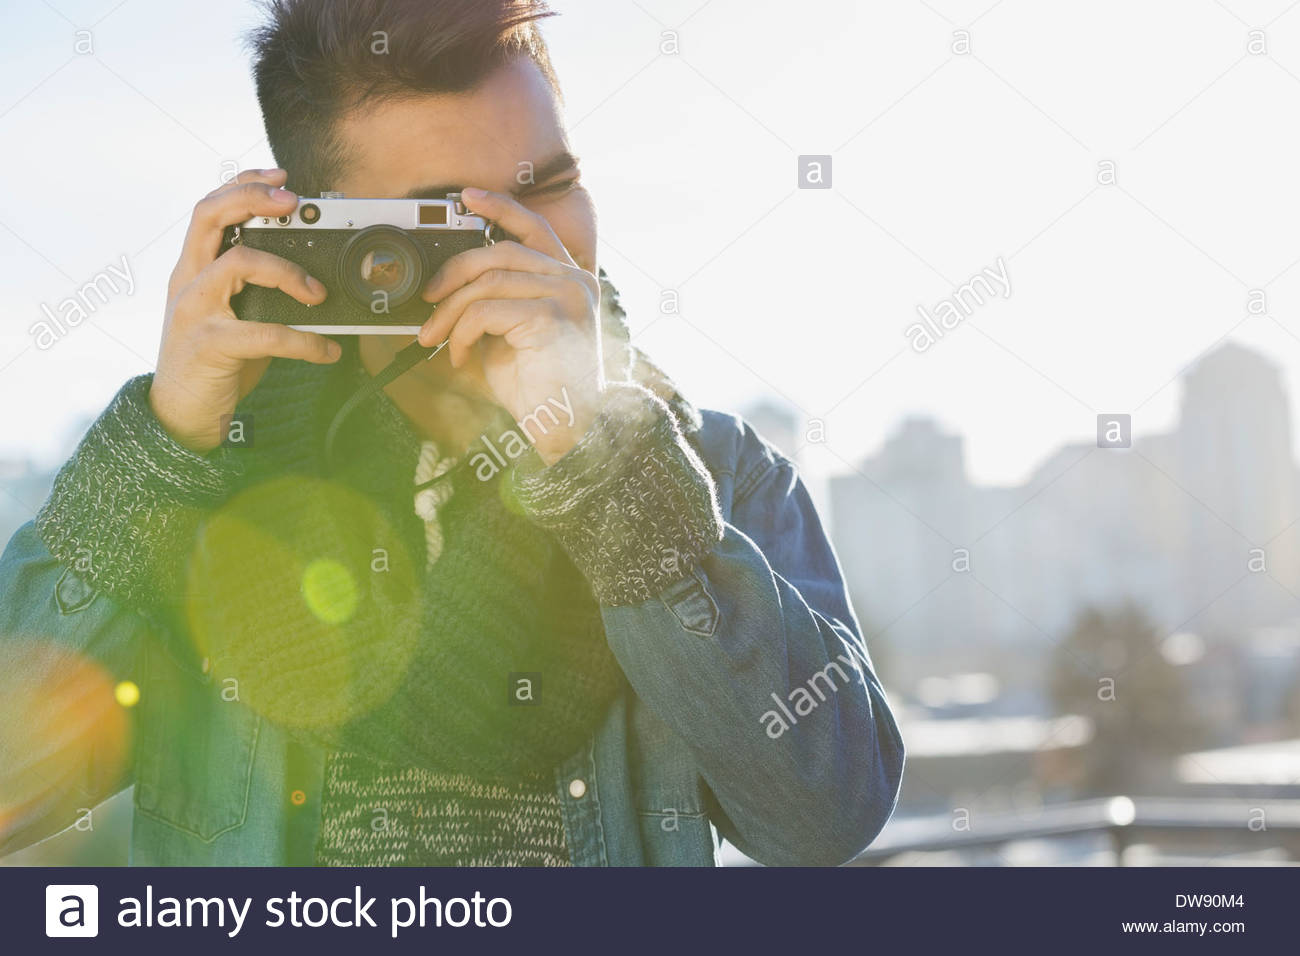 Man photographing through vintage camera outdoors - Stock Image